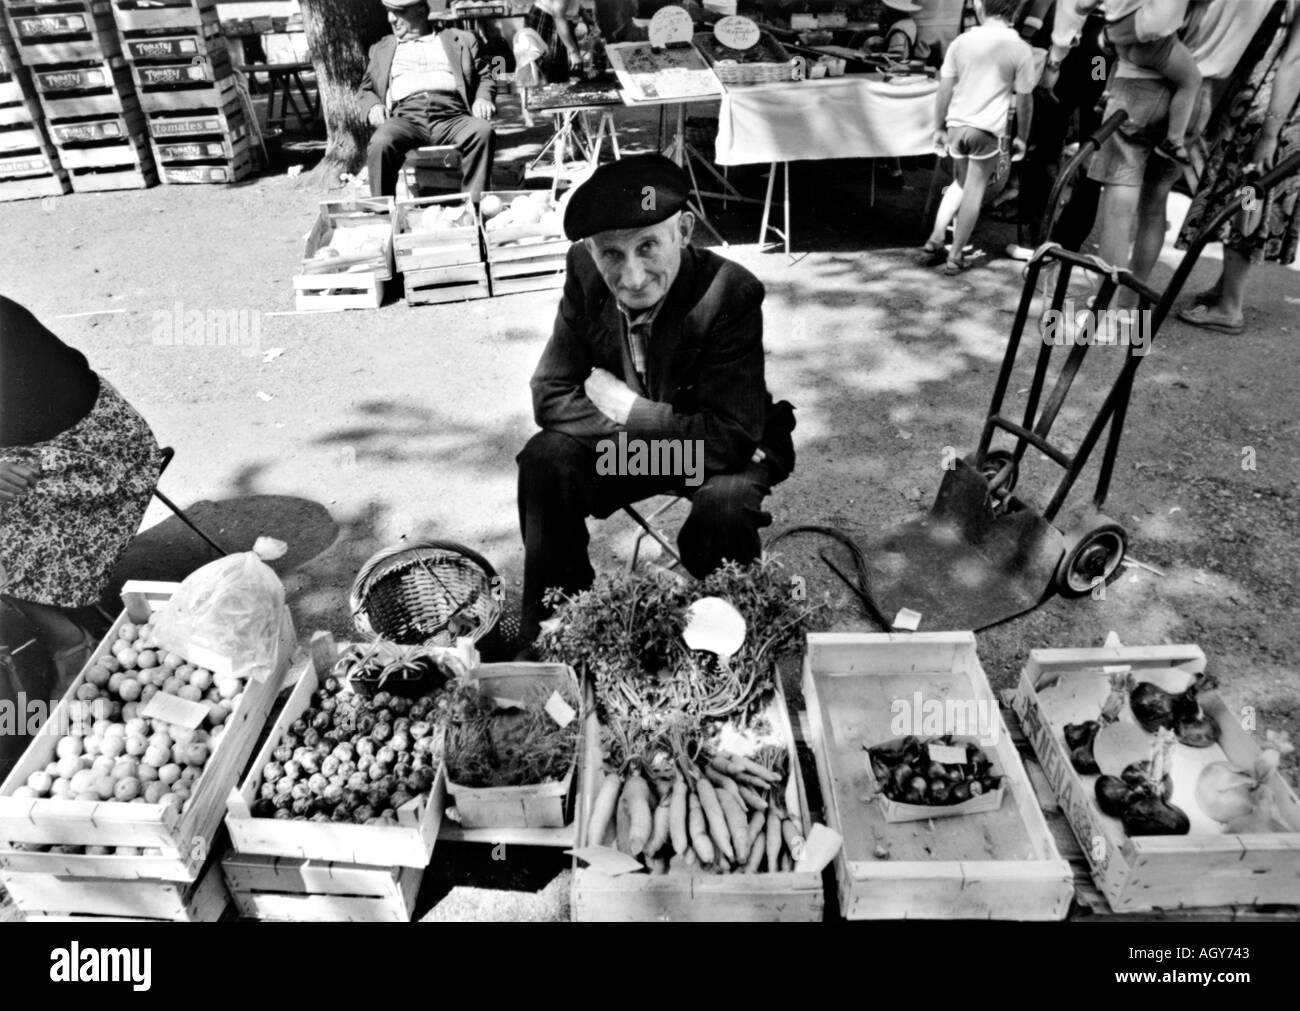 street photography man selling vegetable at a market in southern France - Stock Image